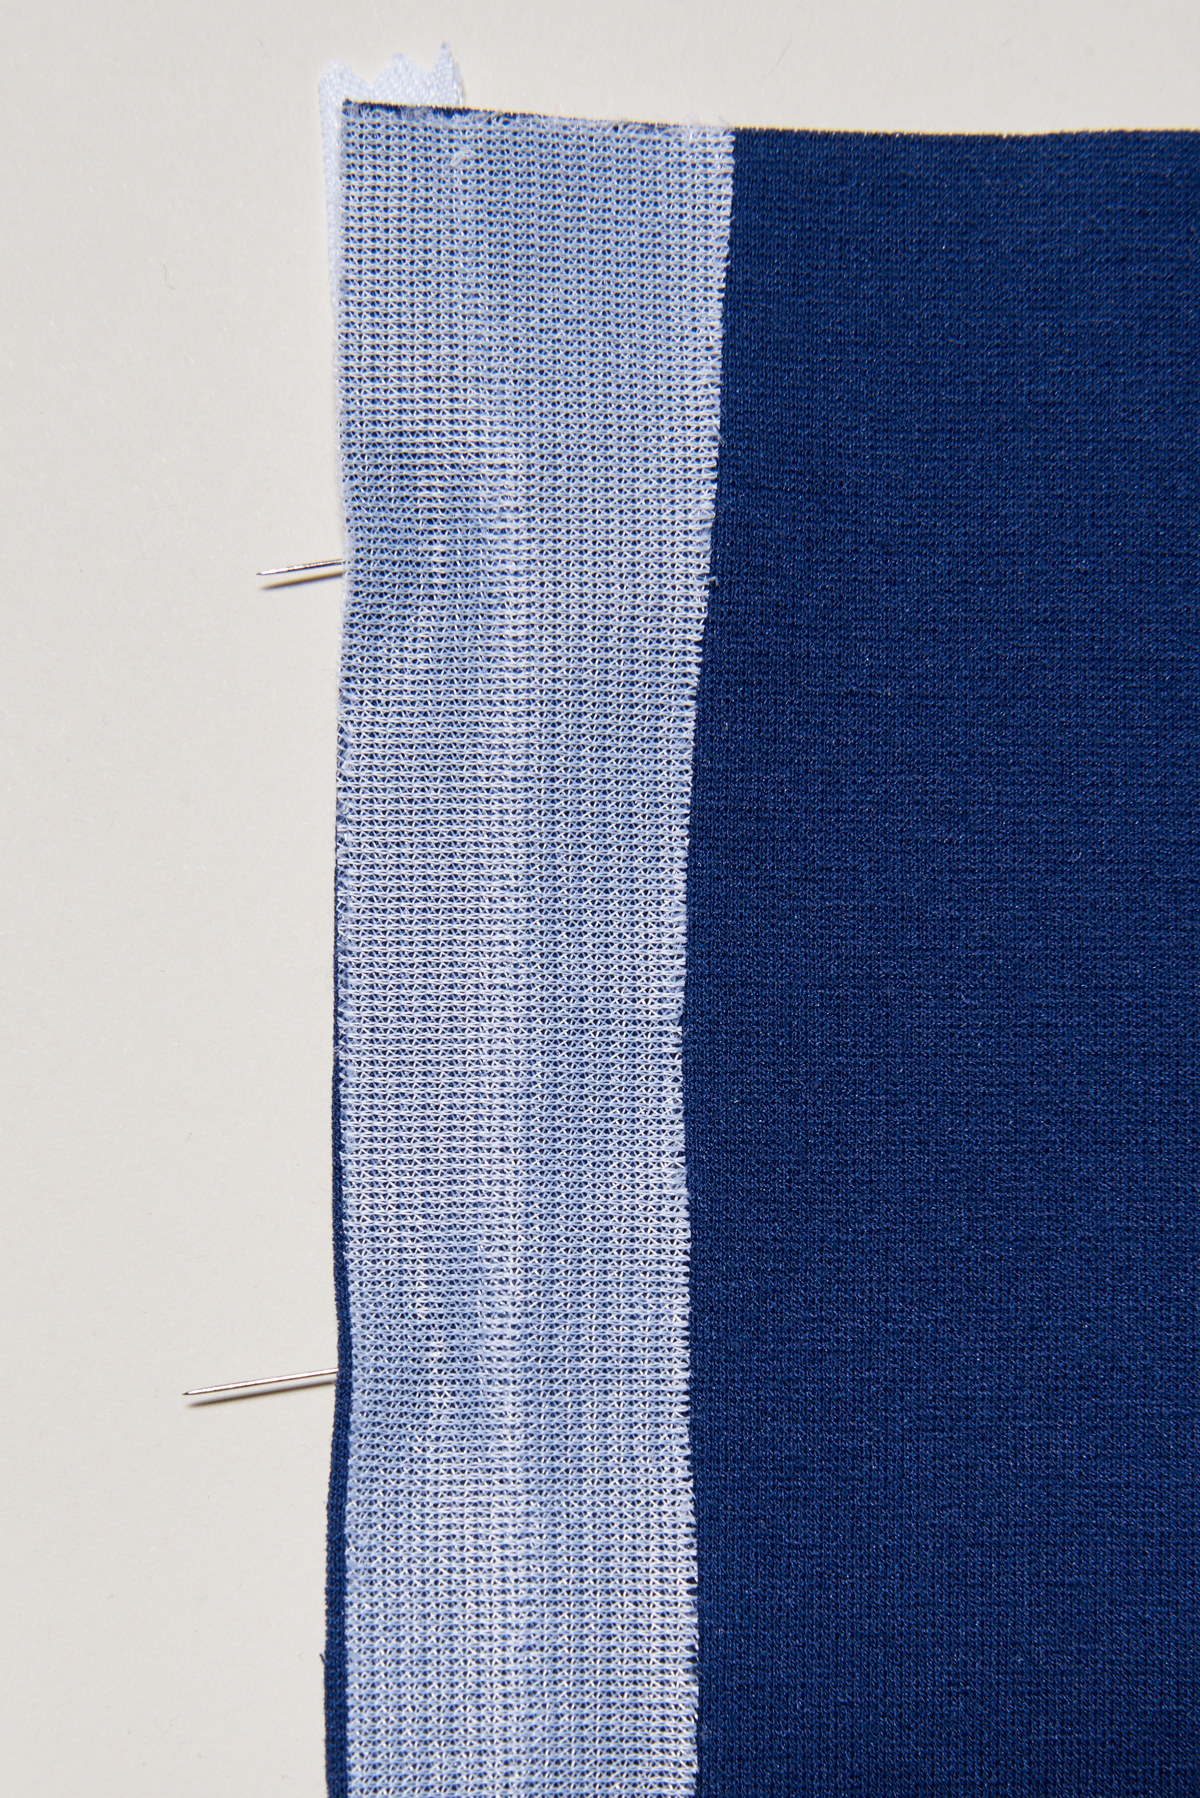 sew an invisible zipper in knits 1